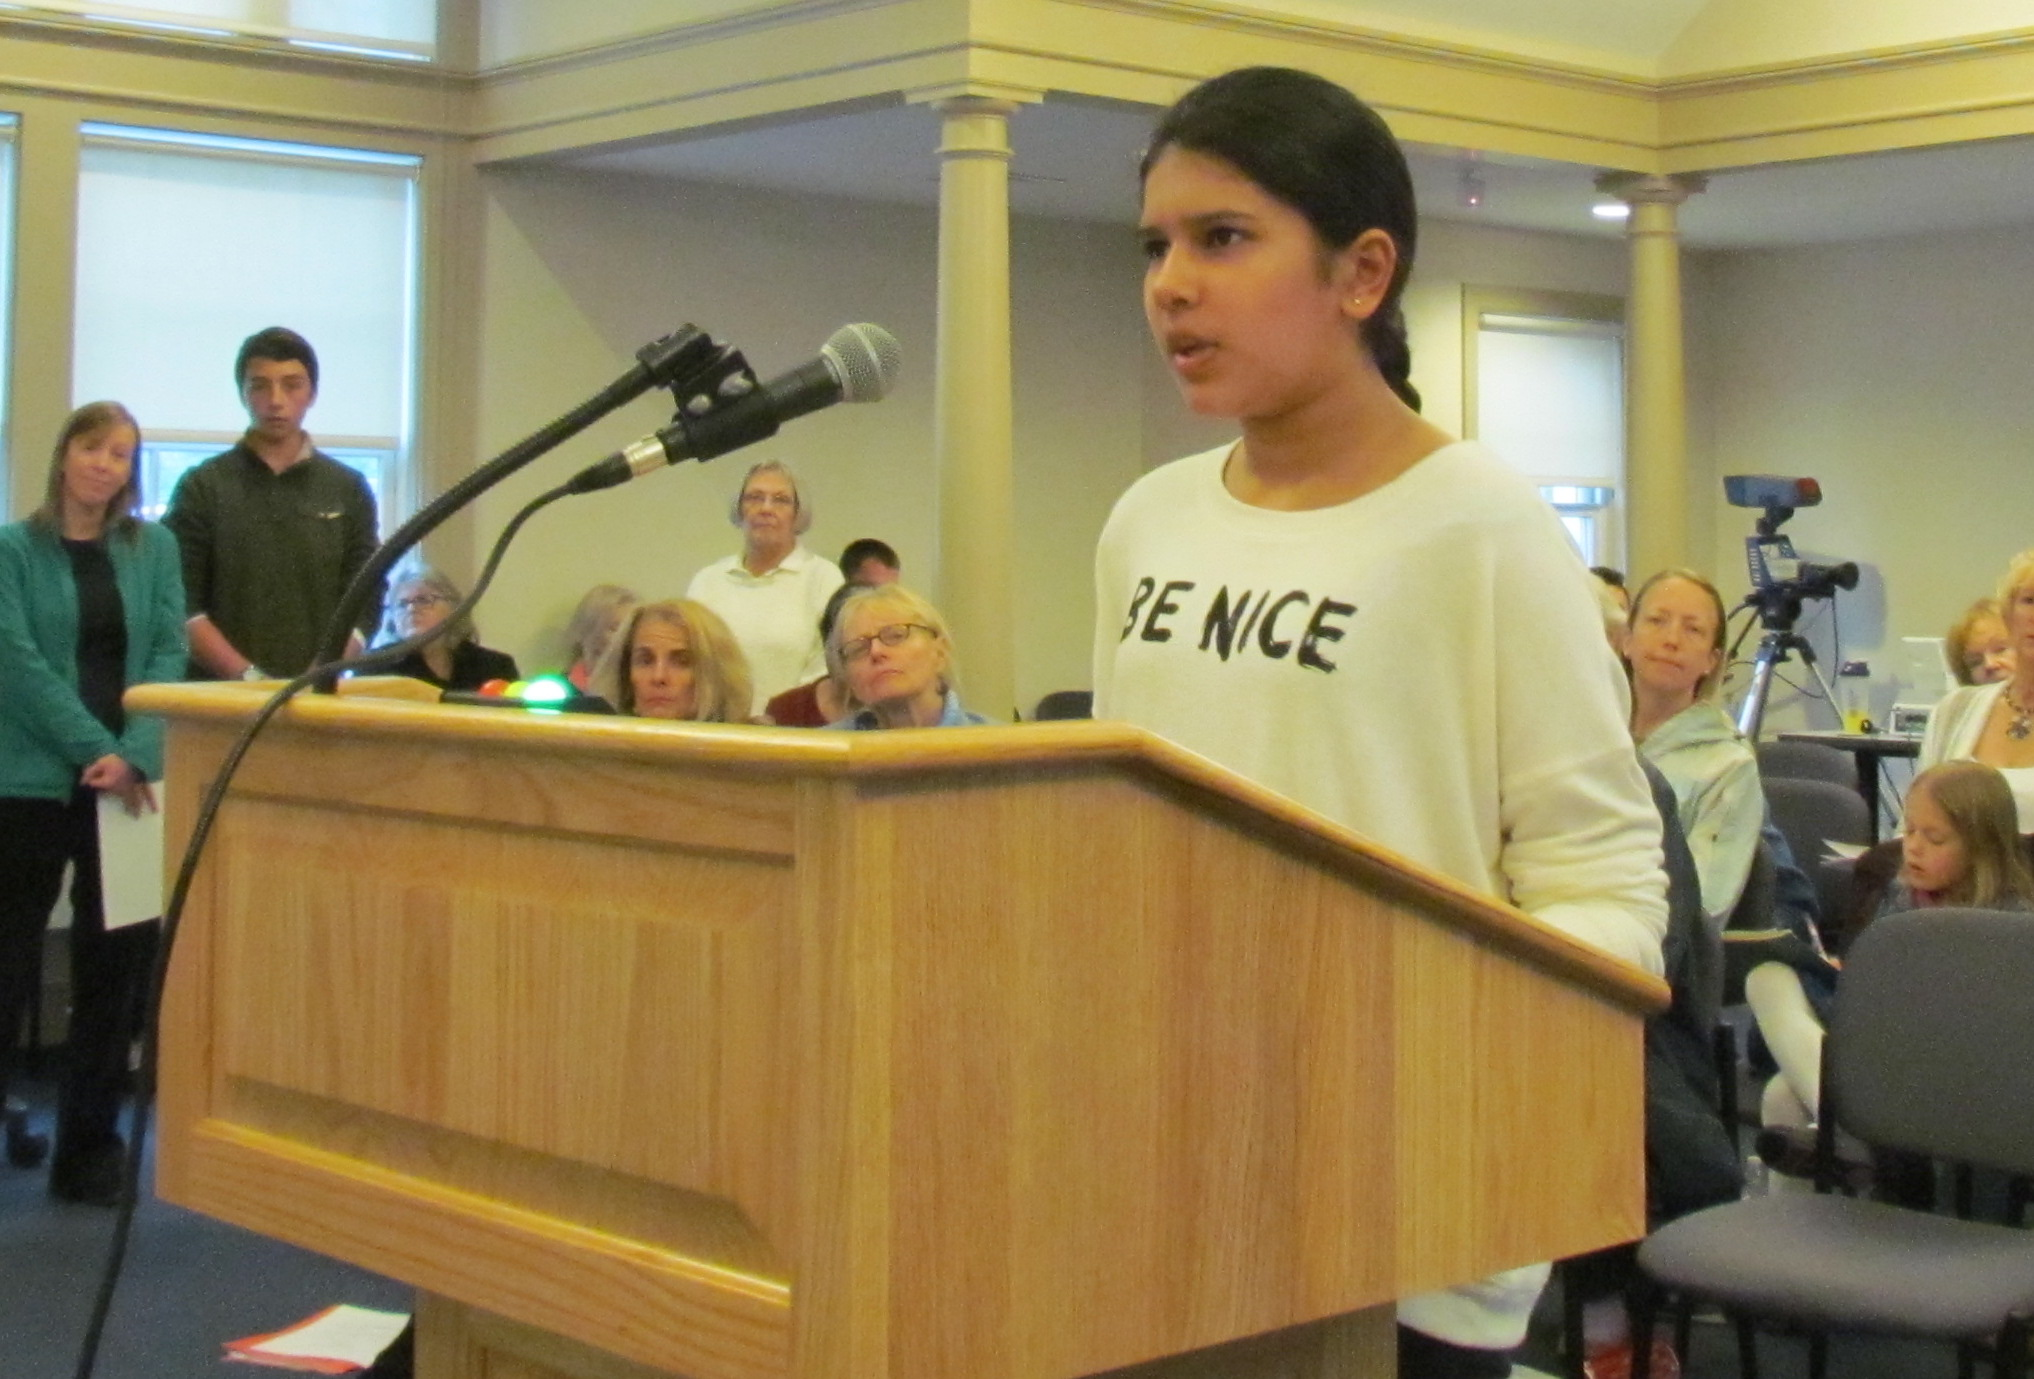 Simar Randhawa was one of several kids to testify at the May 1 Middletown Town Council meeting. (Tim Faulkner/ecoRI News photos)